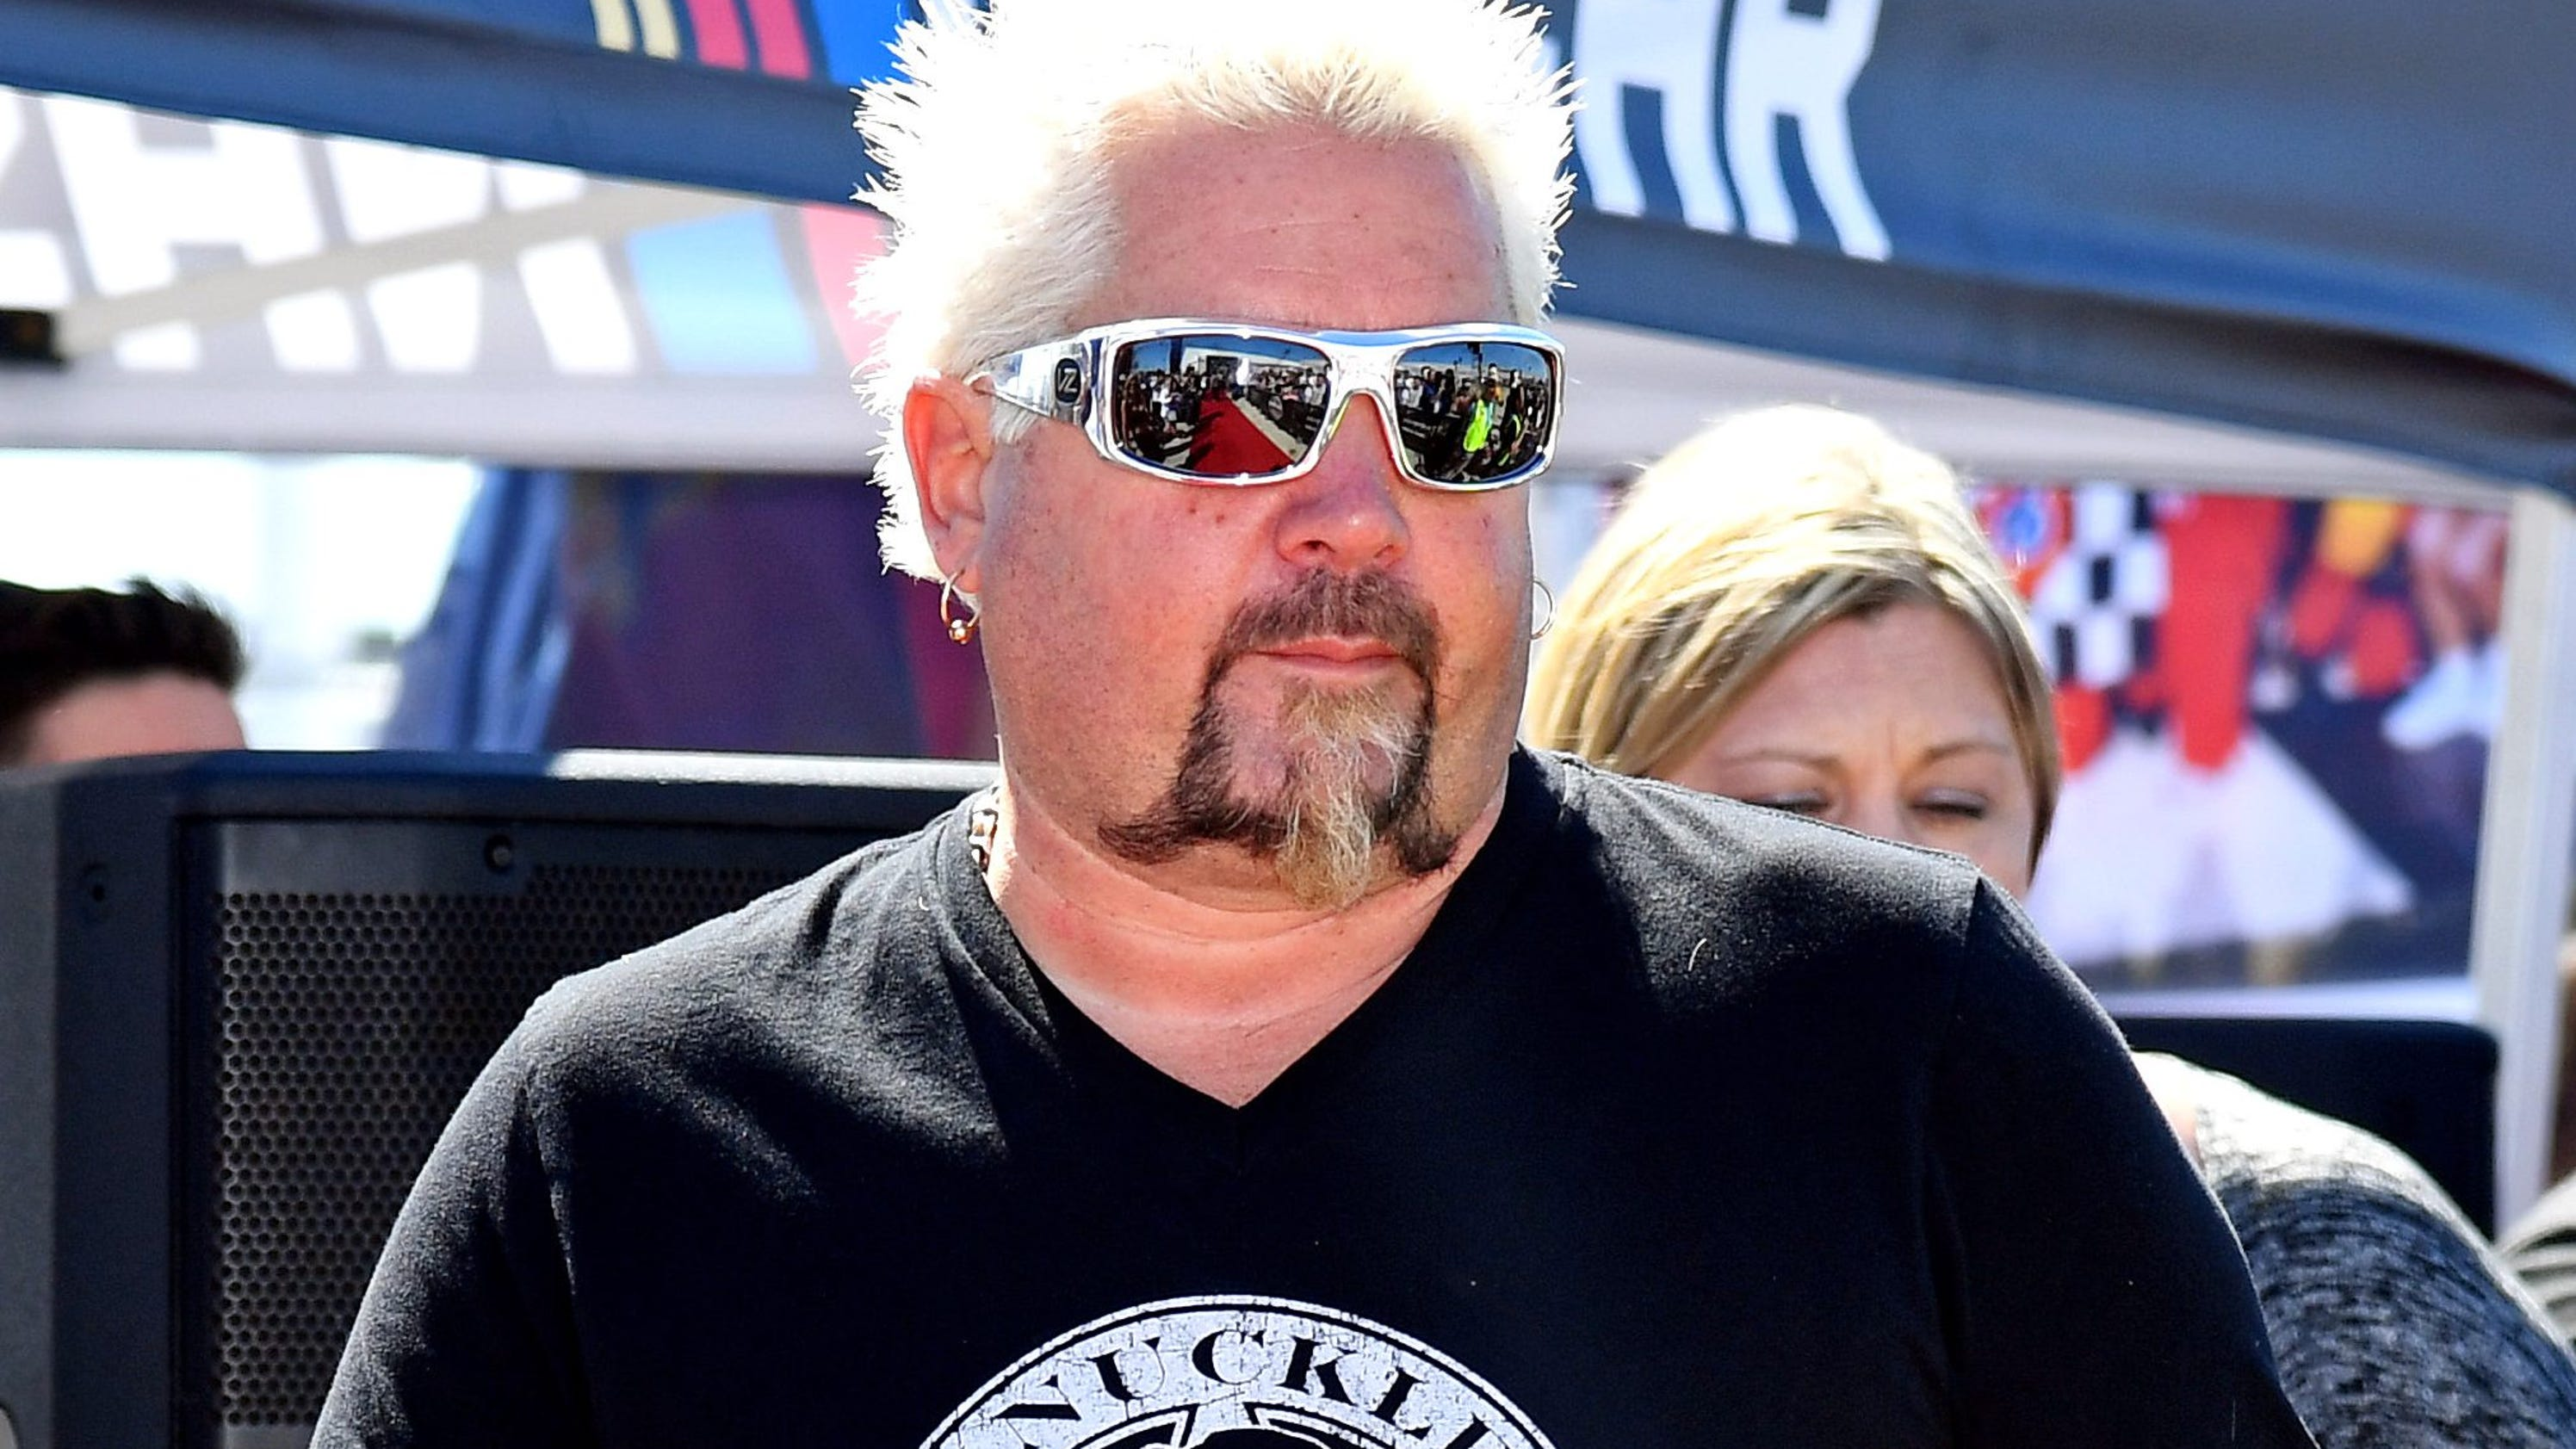 Guy Fieri S Restaurant In Times Square Is Closing